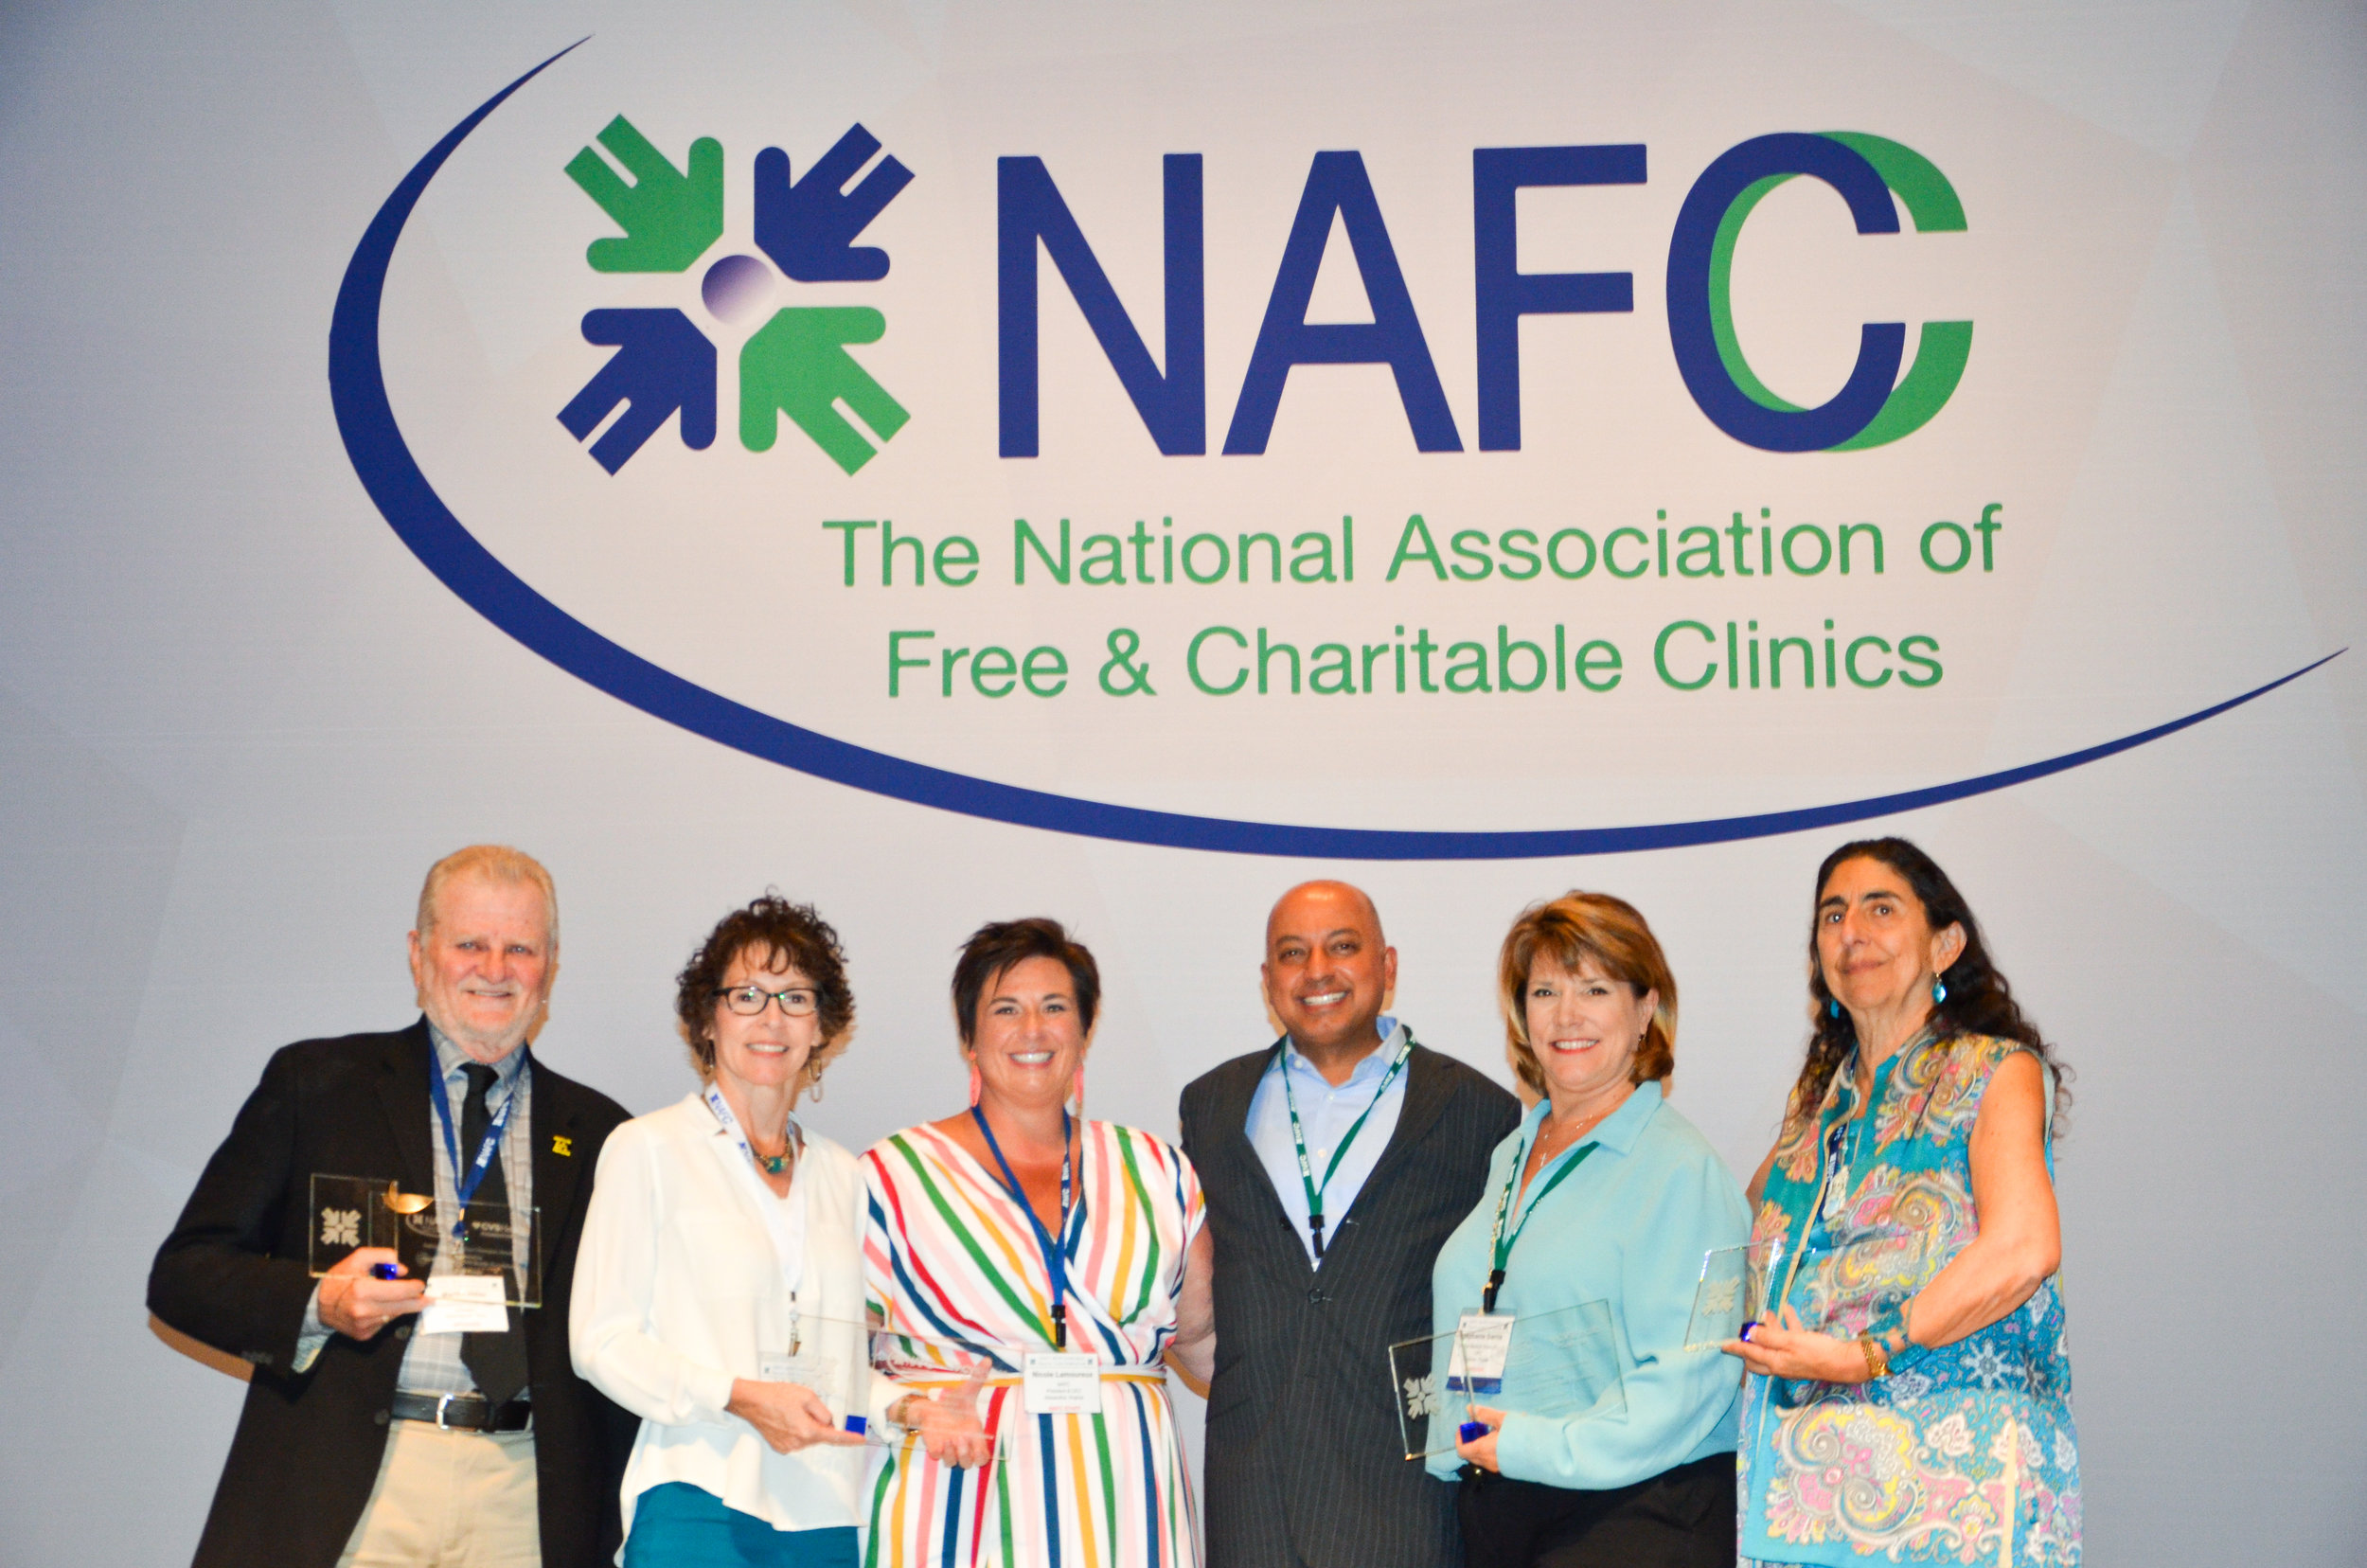 NAFC Awards Executive Director Stephanie Garris as one of their Safety Net Health Care Champions - November 8, 2018